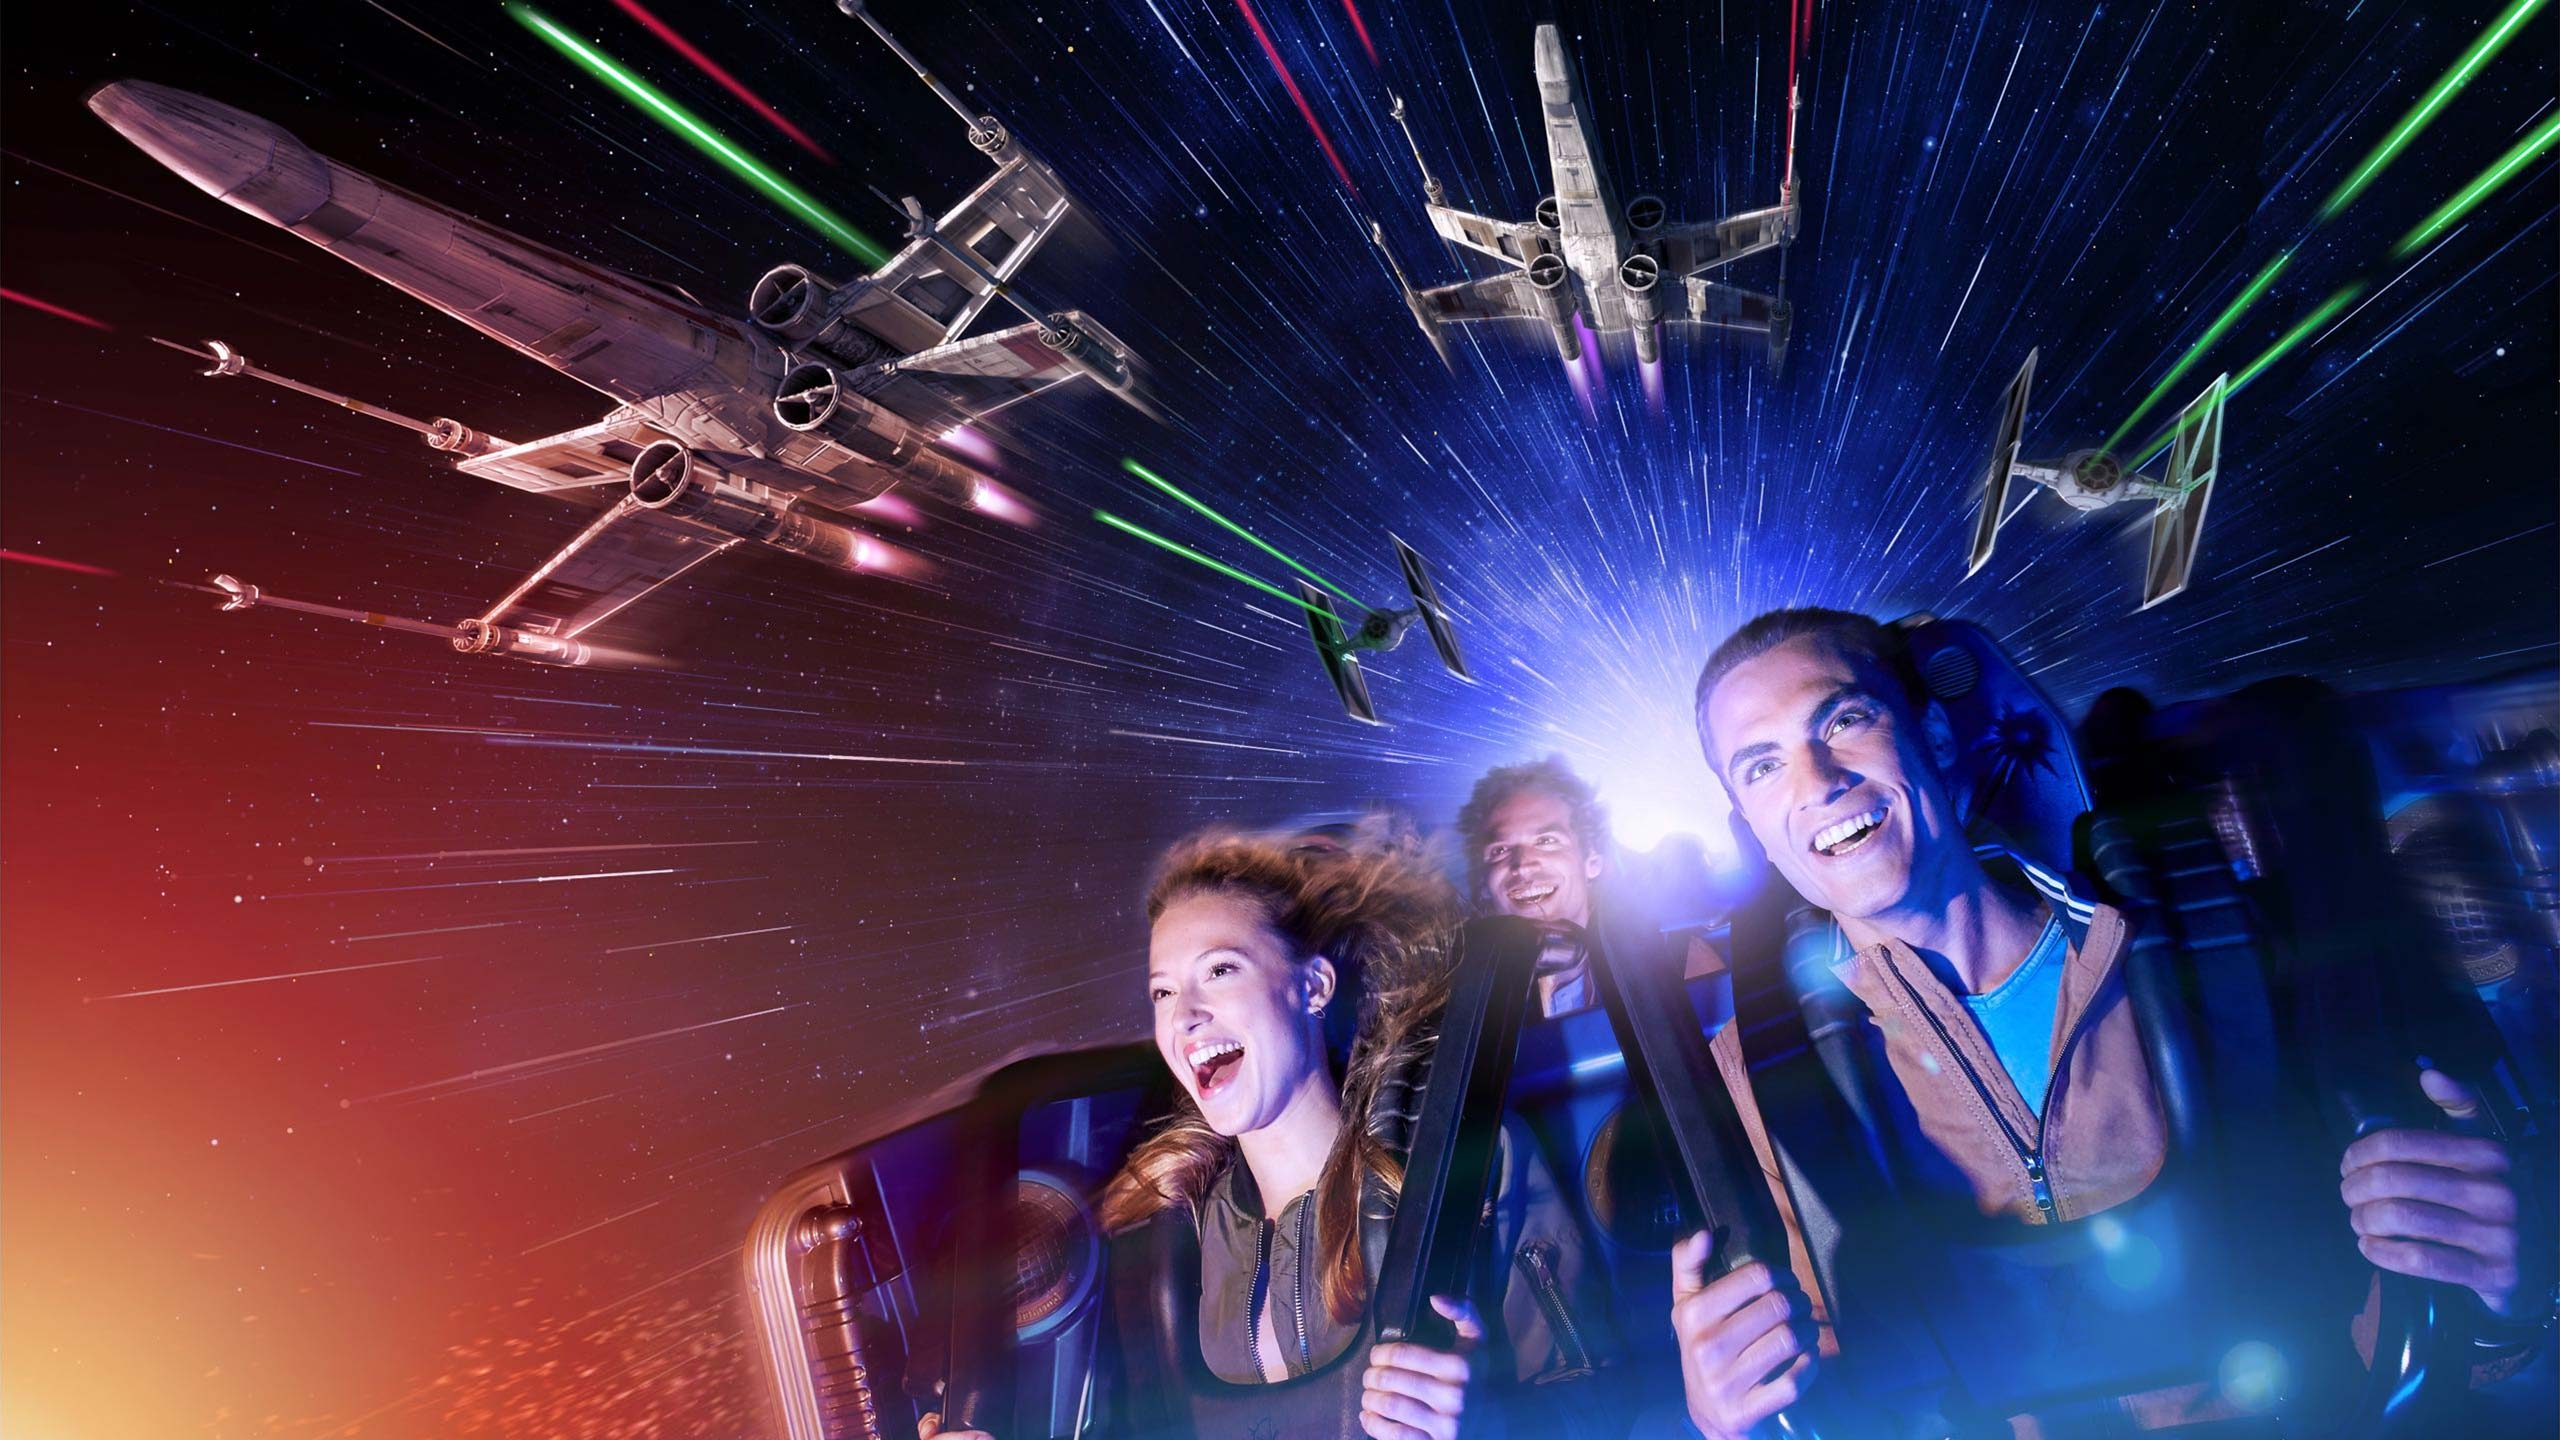 hd13578_2022jun29_world_star-wars-hyperspace-mountain_16-9.jpg